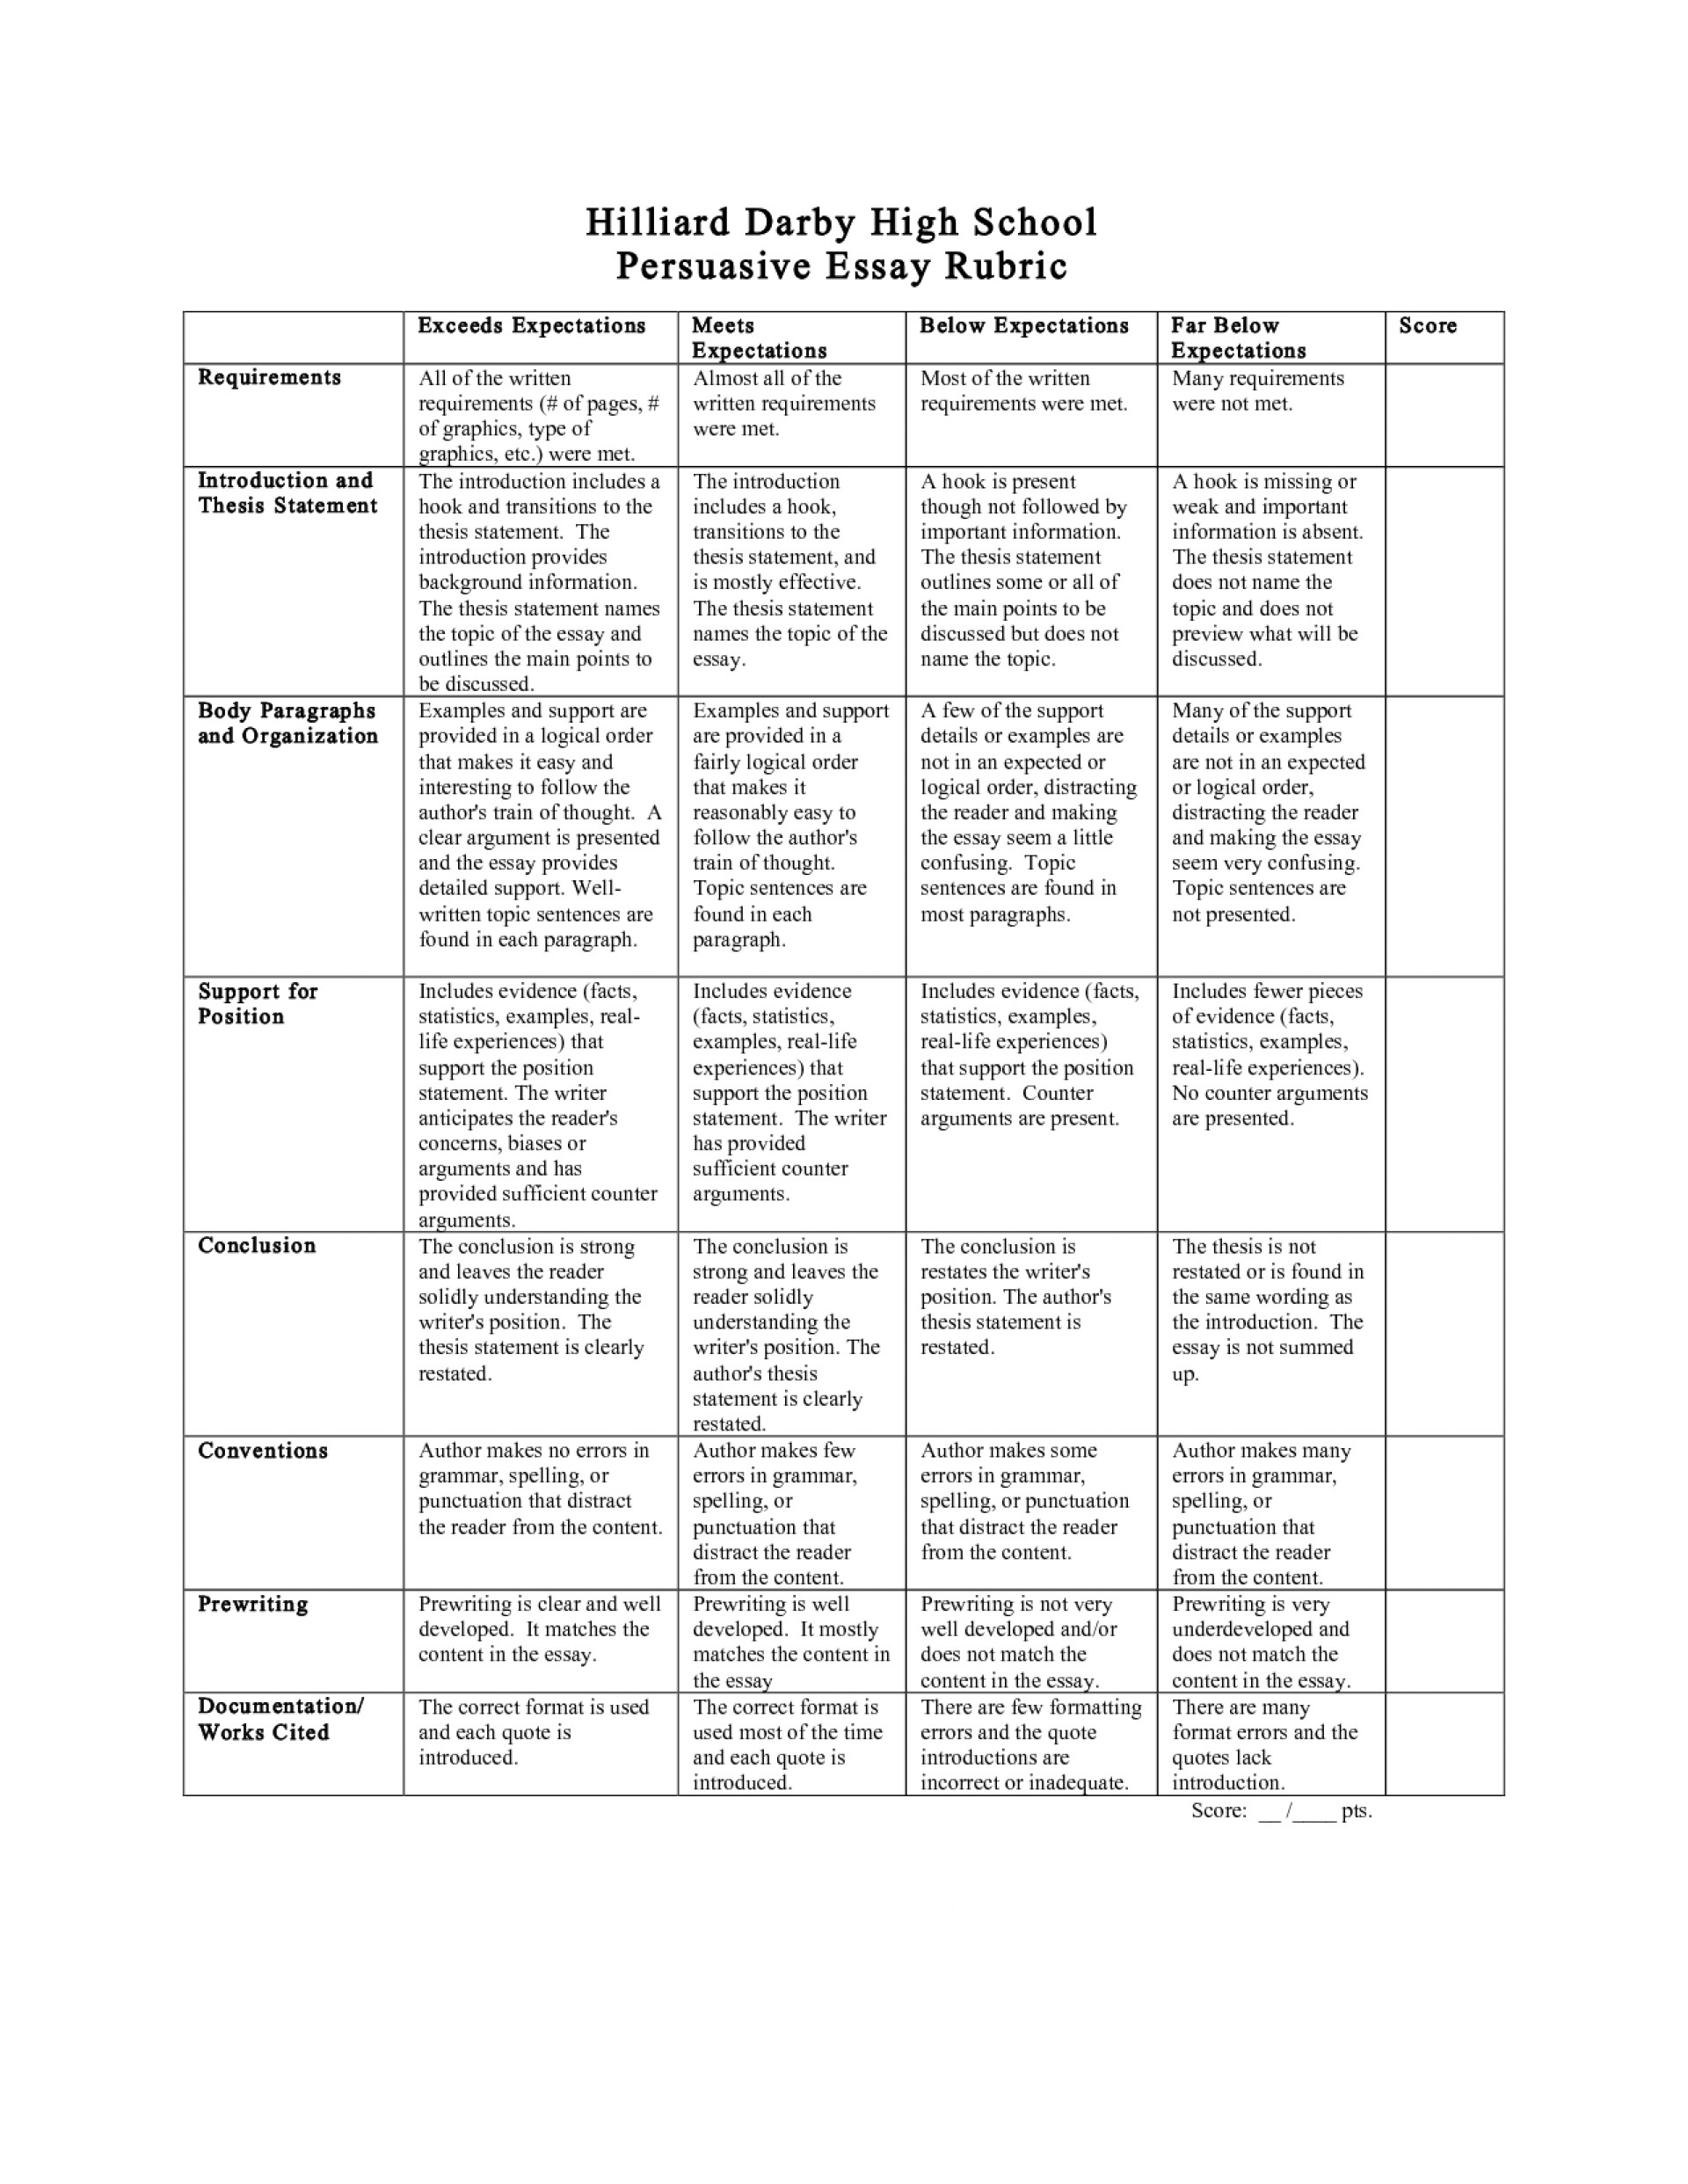 015 Persuasive Essay Rubric High School 438153 Argumentative Research Outstanding Paper 1920